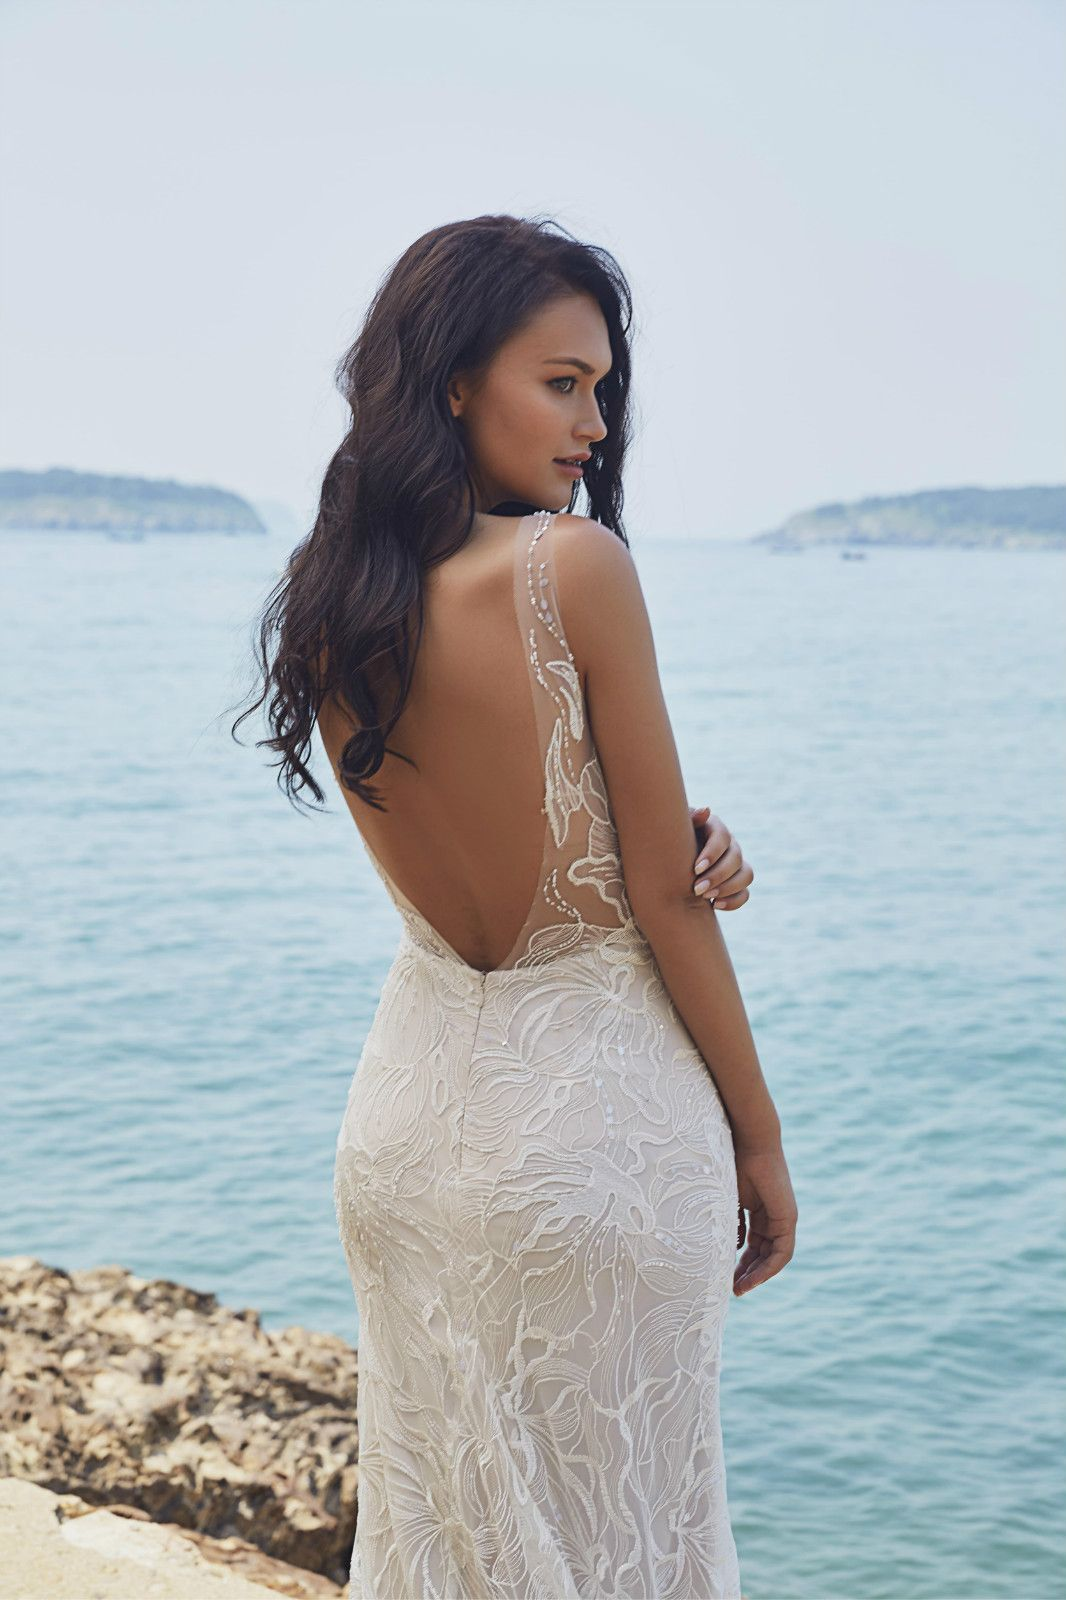 Virena By Chic Nostalgia Will Be Coming Soon To Sincerely The Bride Located In Vancouver Wedding Gown Backless Wedding Dress Trends Wedding Dress Inspiration [ 1600 x 1066 Pixel ]